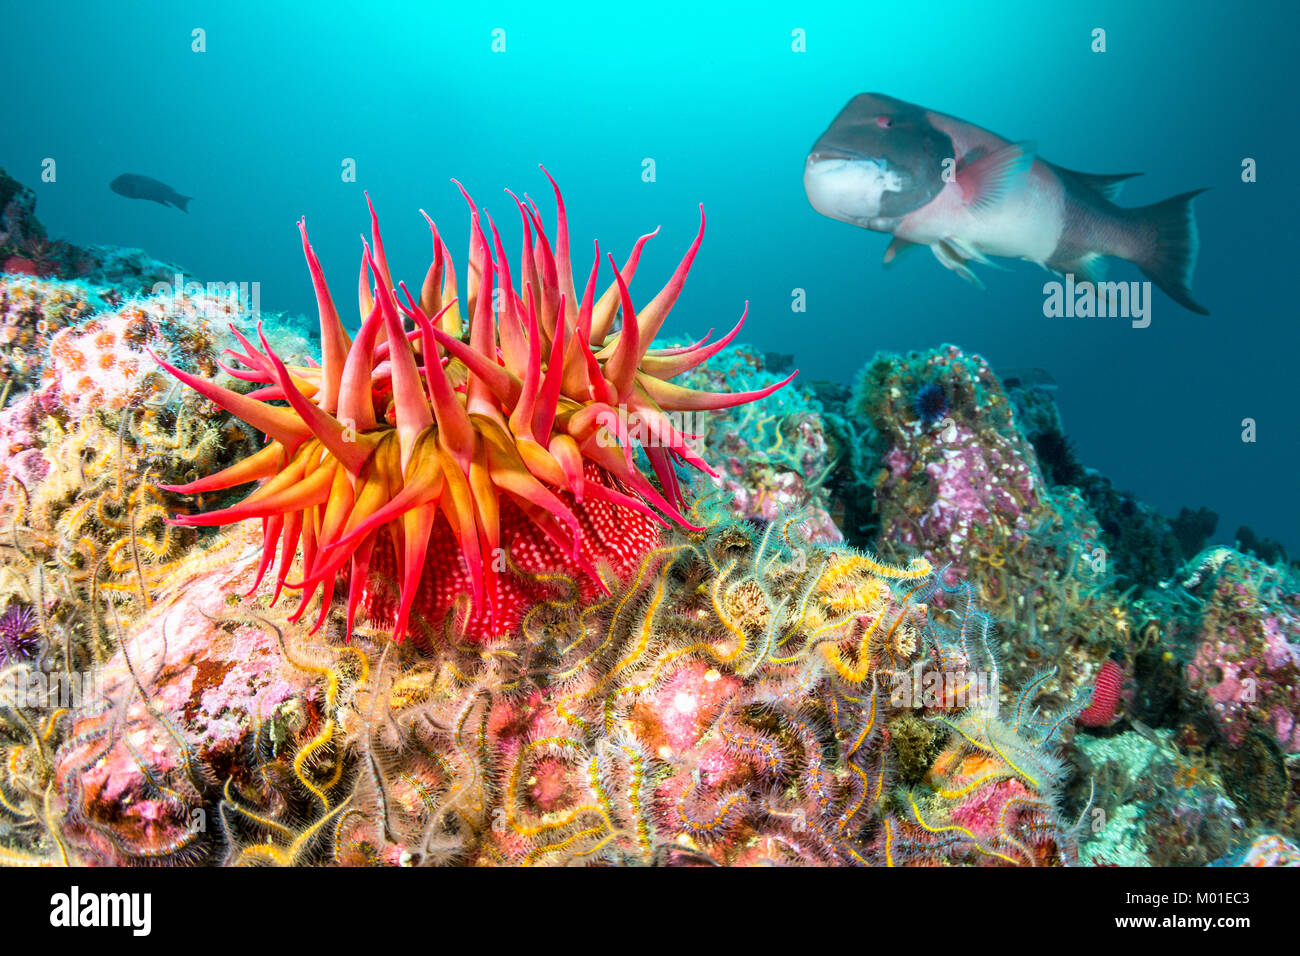 A red rose anemone perched atop a reef in Southern California's Channel Islands attracts a large sheephead gamefish - Stock Image